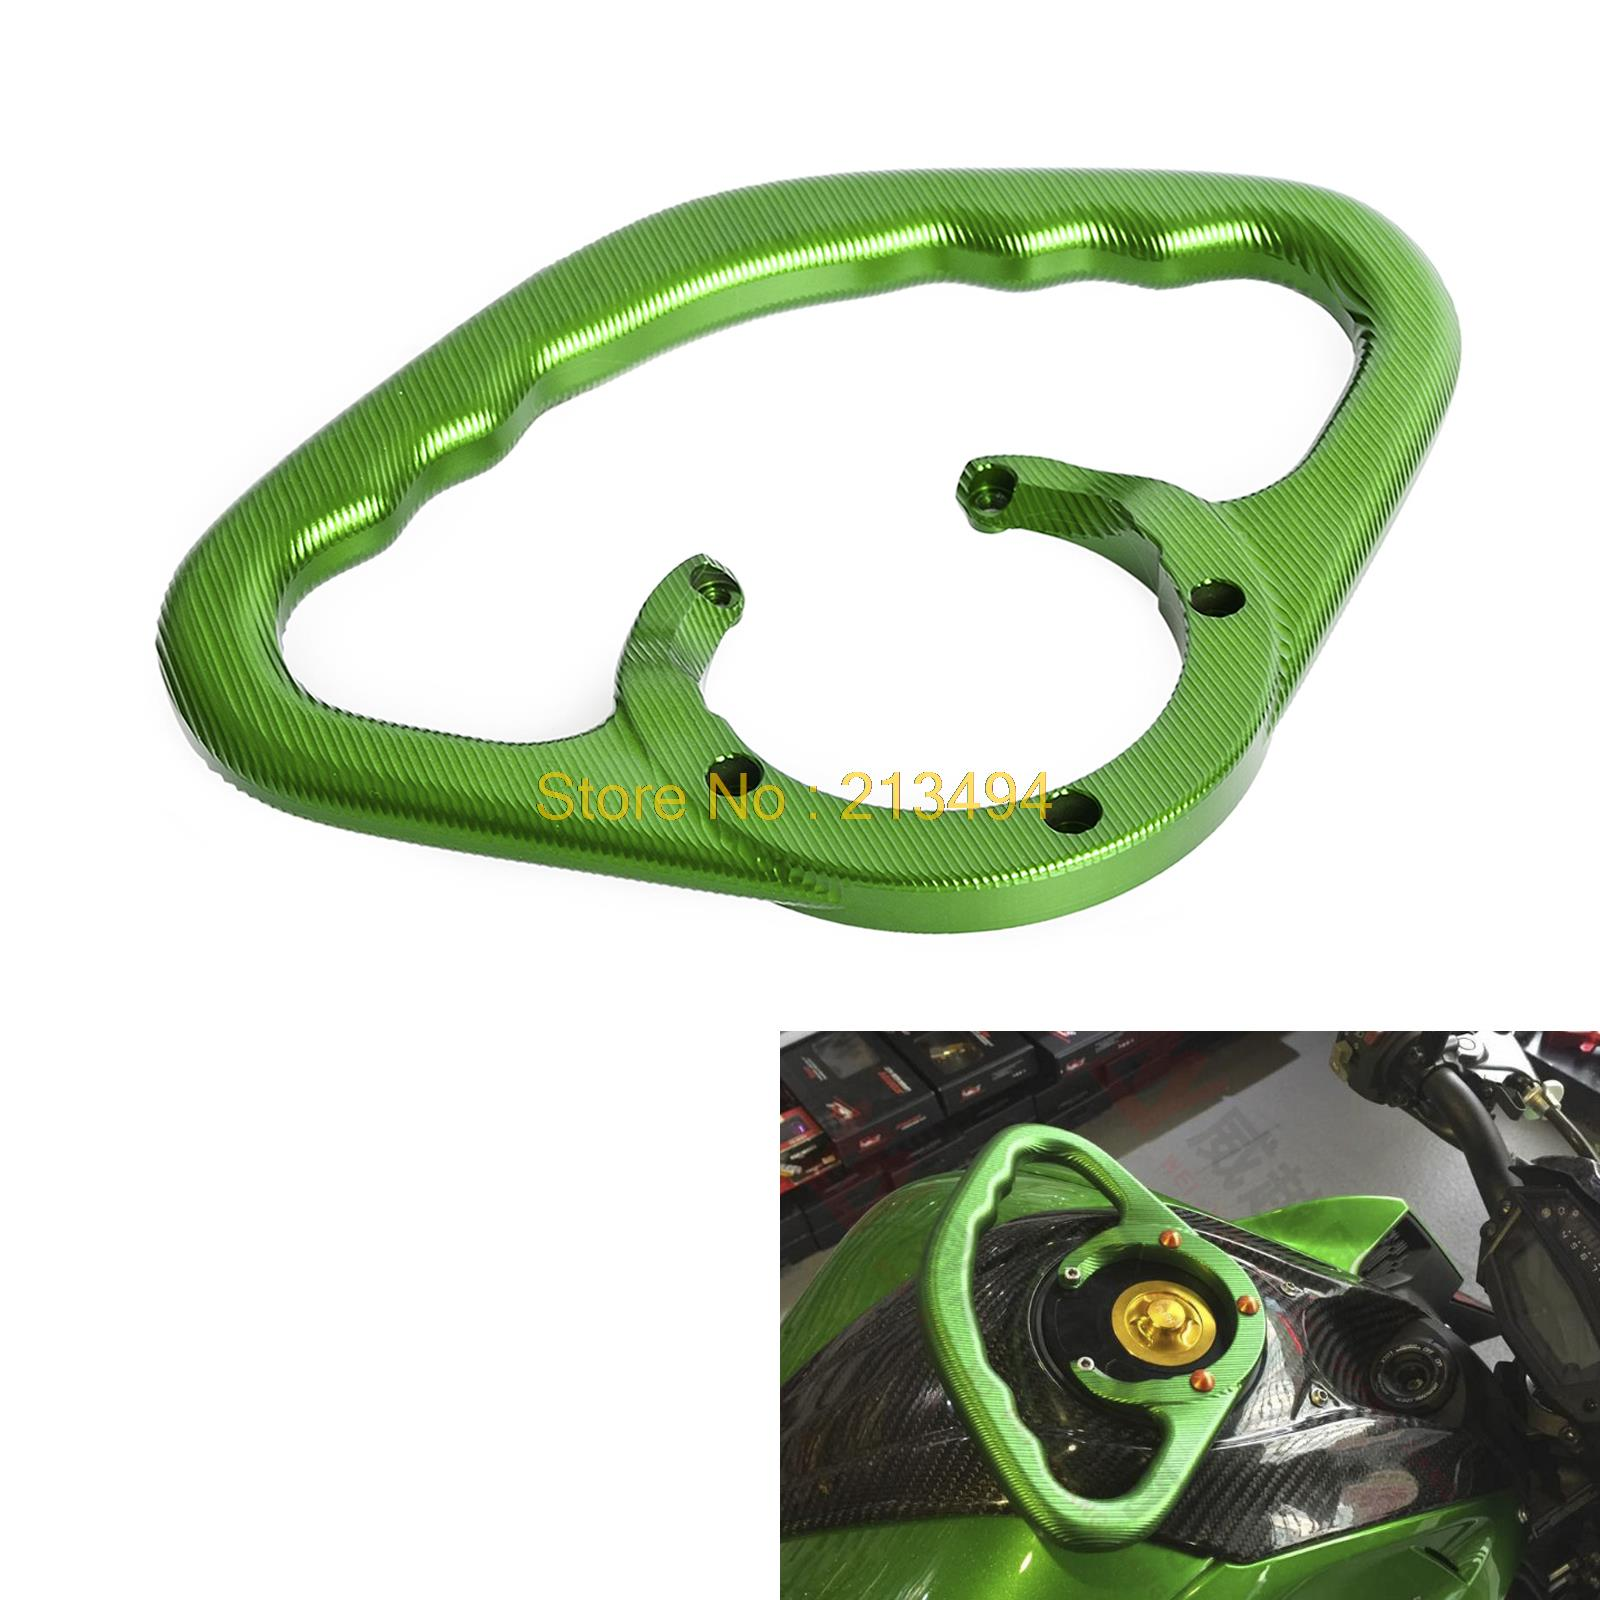 Motorcycle Tank Grab Passenger Grab Handle For Kawasaki Versys 650 1000 Z1000/ABS ZX1100 ZZR600 ZZR1200 Ninja 650 750 1000 ZX-6R<br><br>Aliexpress